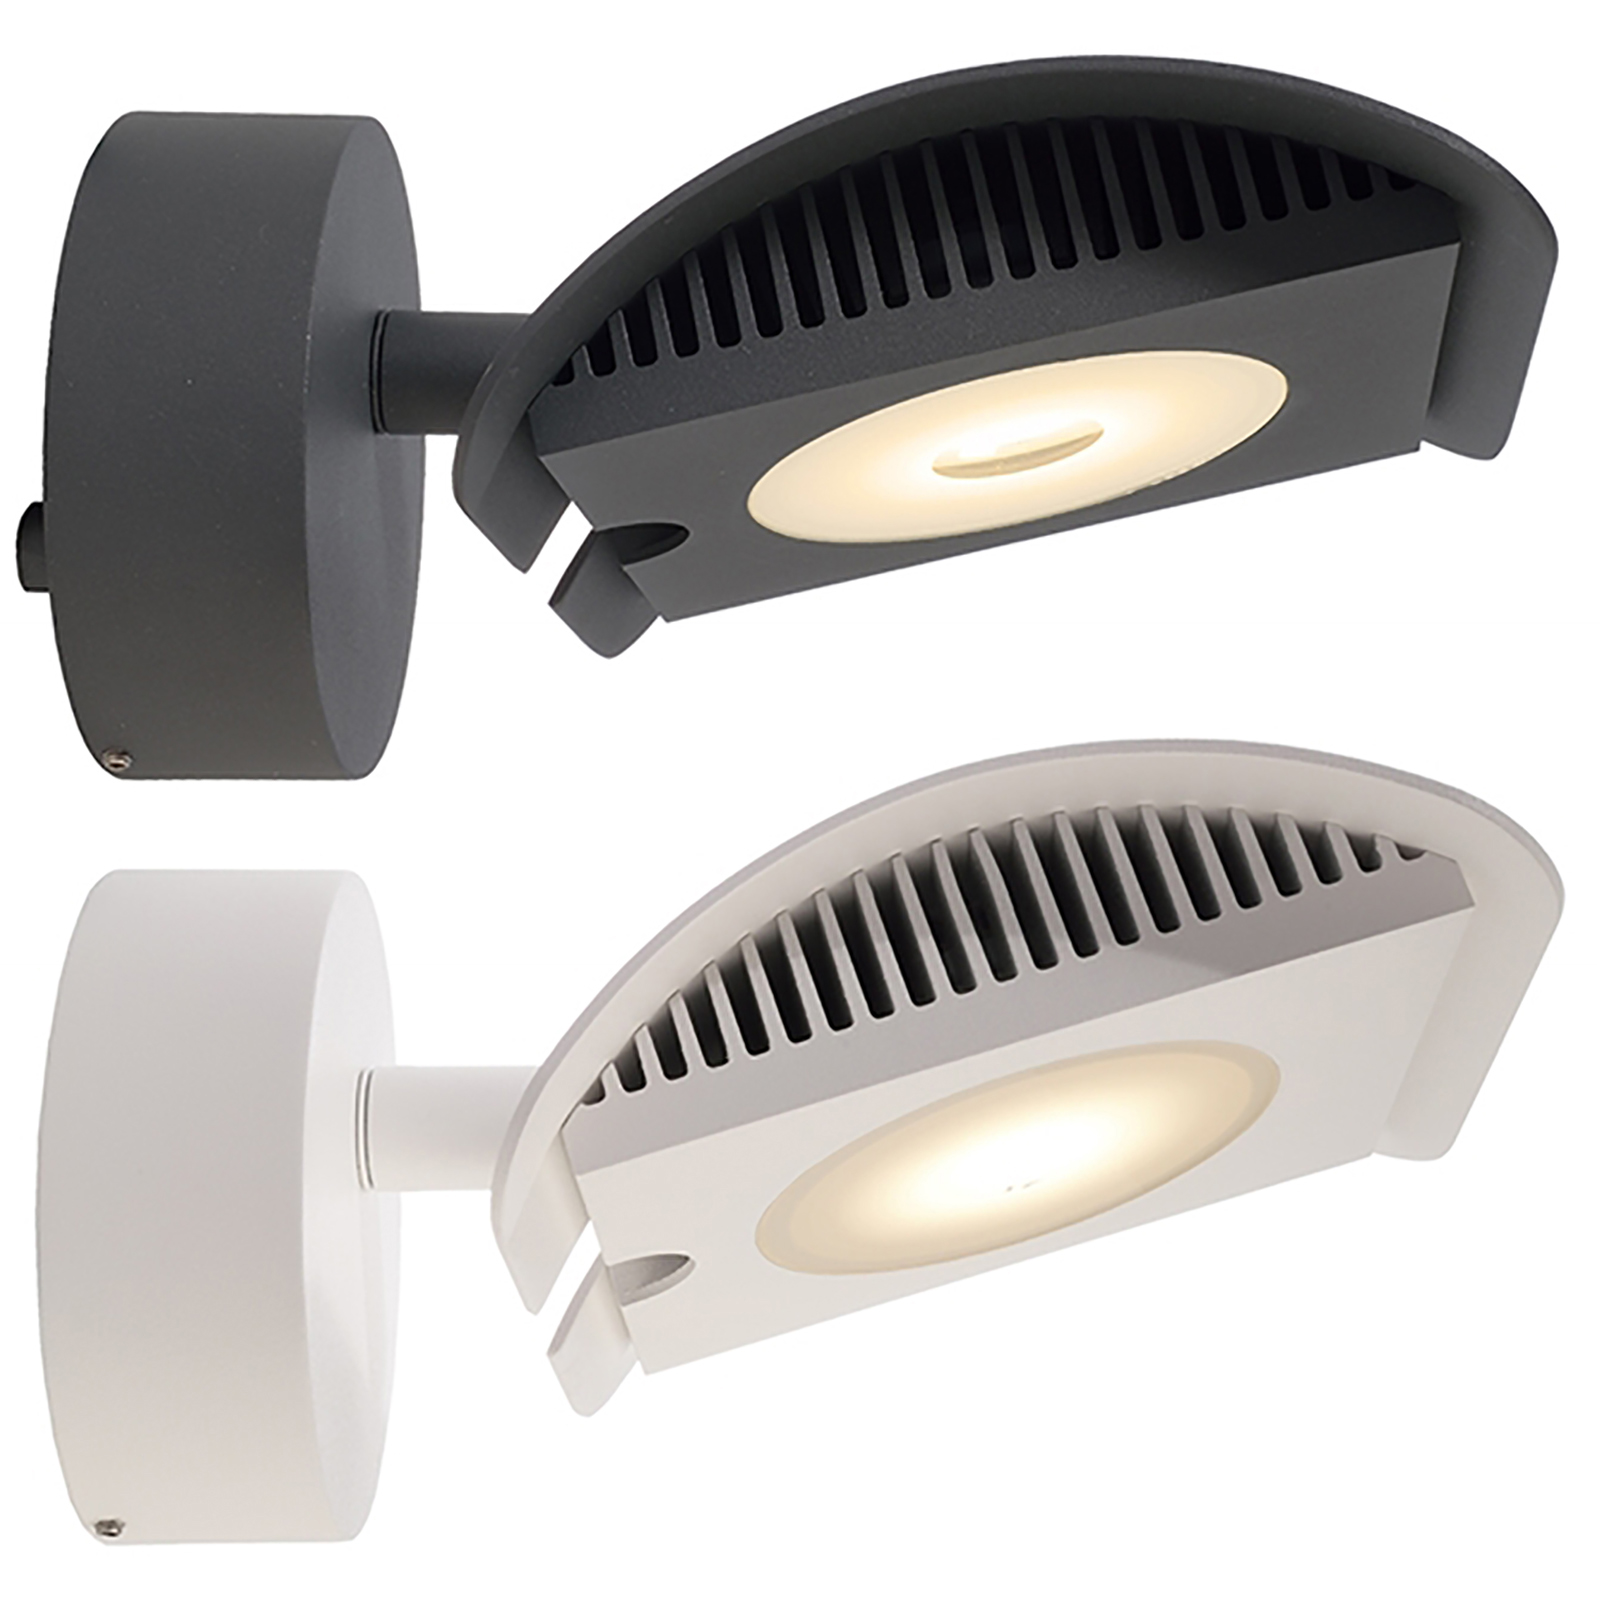 Faretto LED 15W applique dimmable orientabile esterni luci negozio 3000K IP65